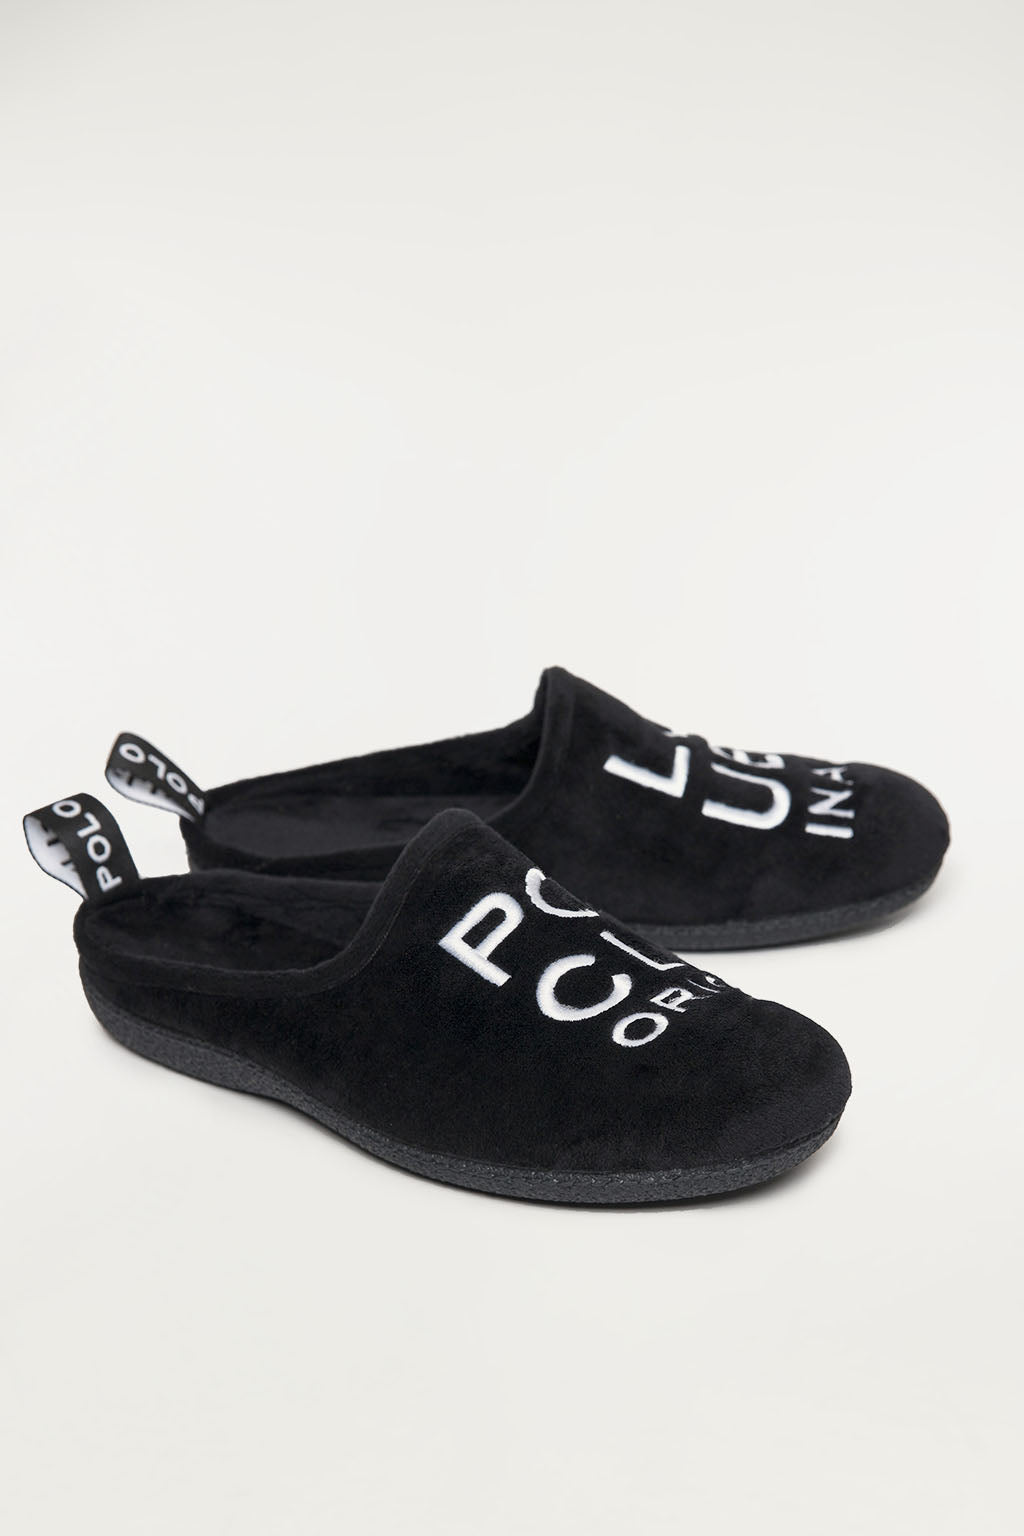 Black sleepers with big embroidery